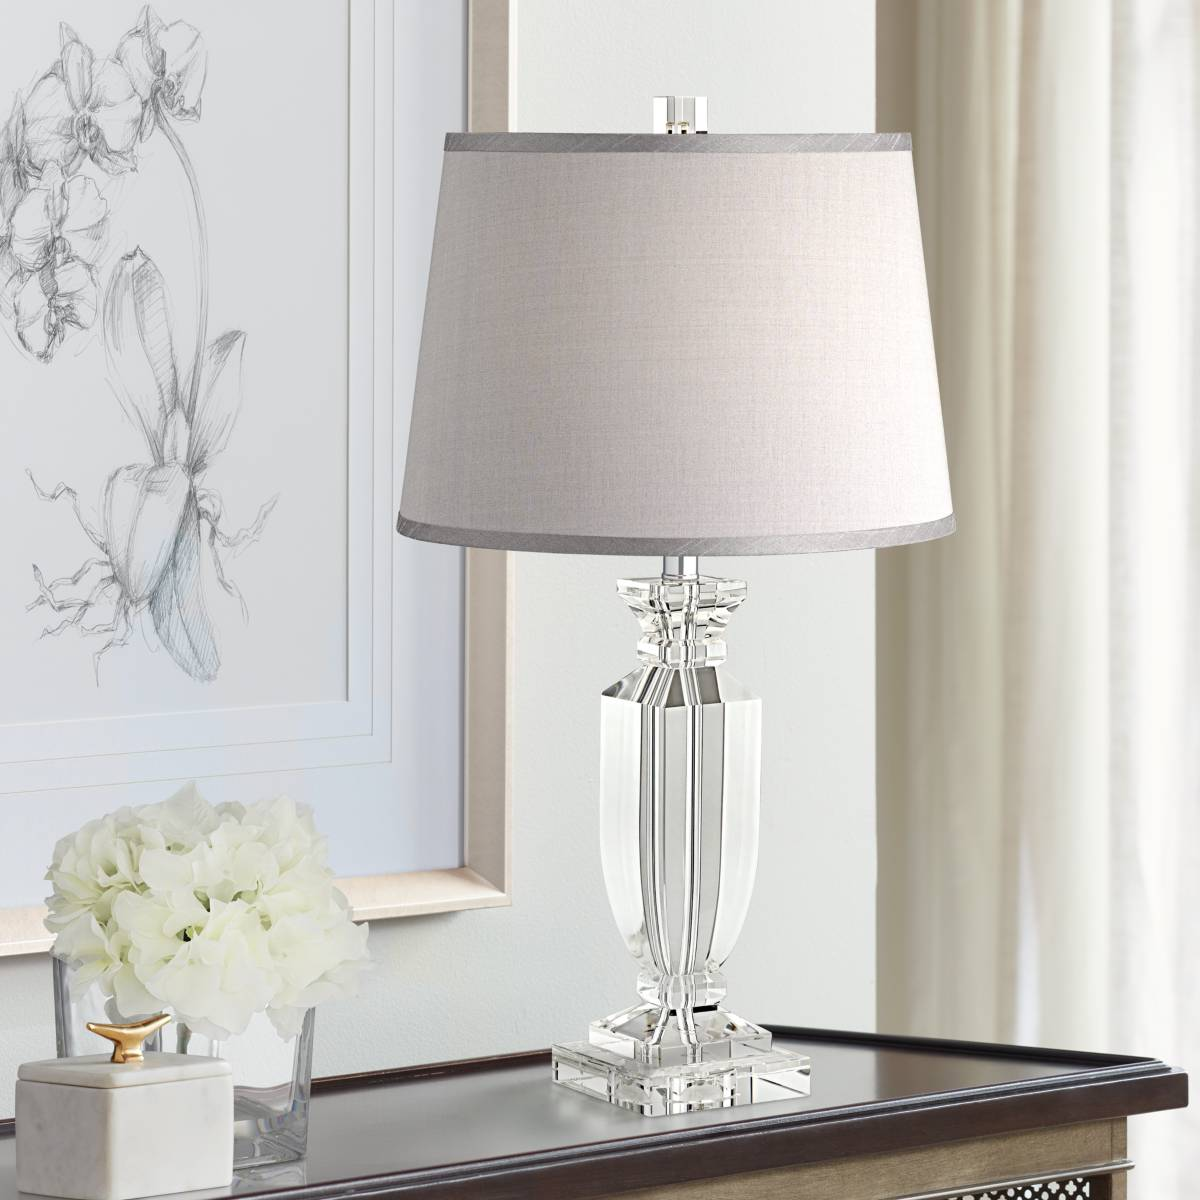 Lamp Plus Stores: Crystal, Bedroom, Table Lamps